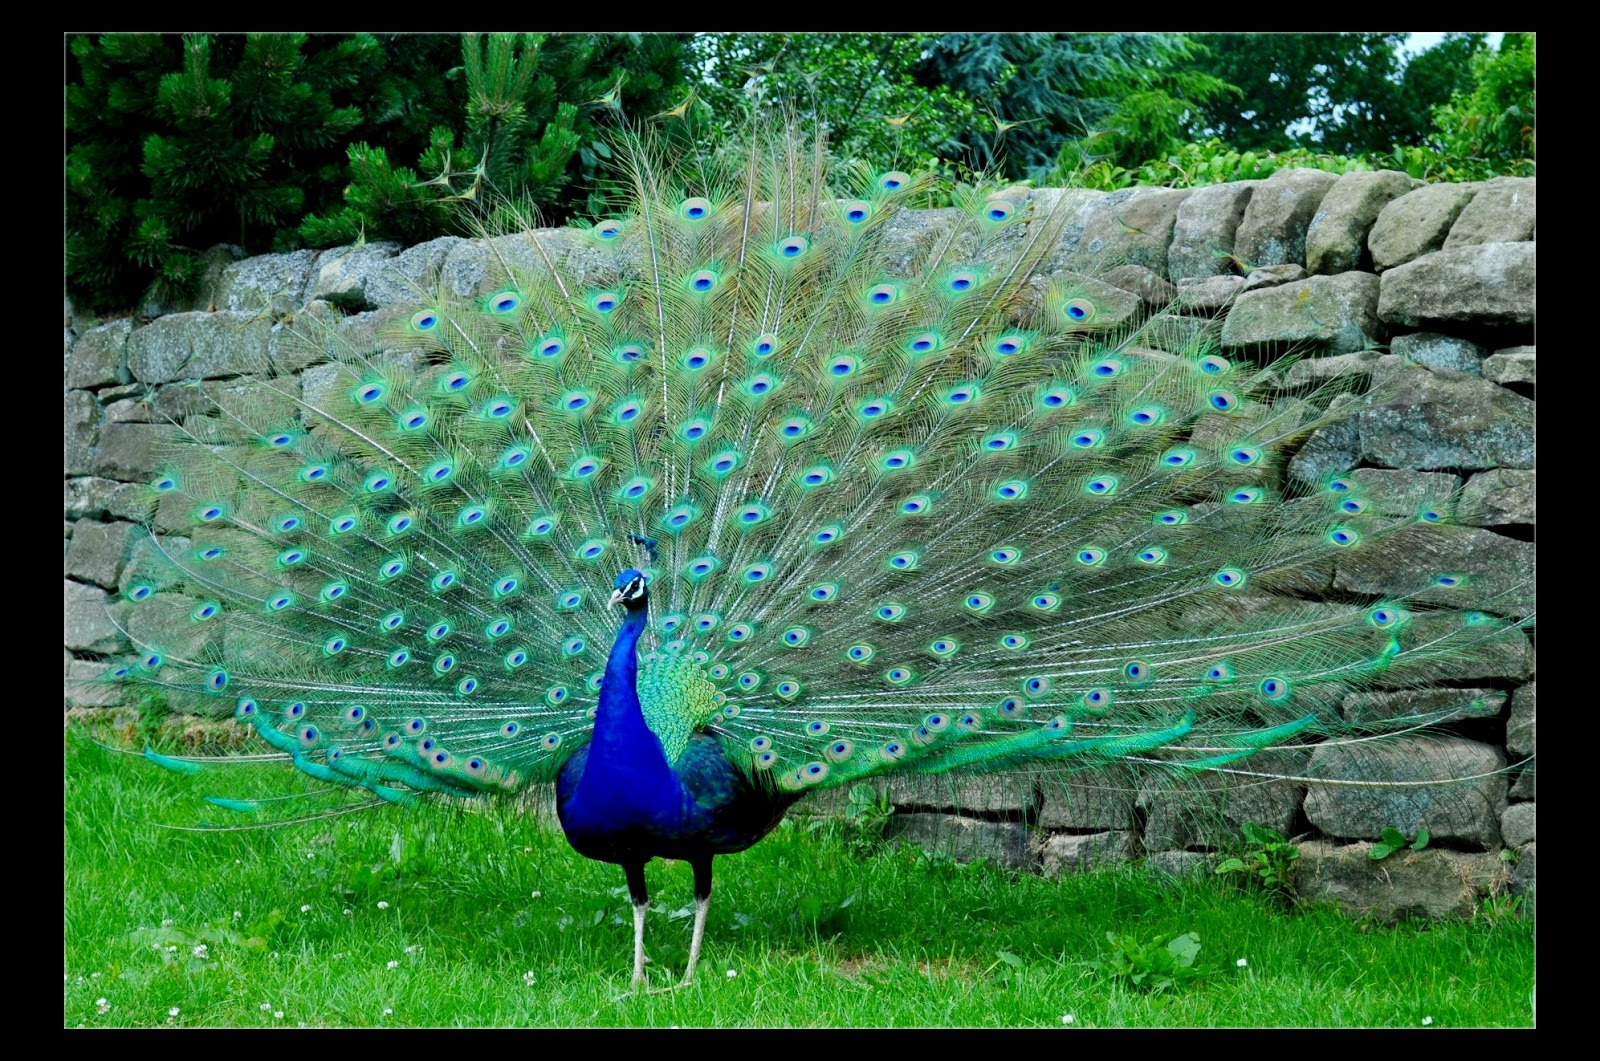 peacock images pictures wallpaper photos download times2tech